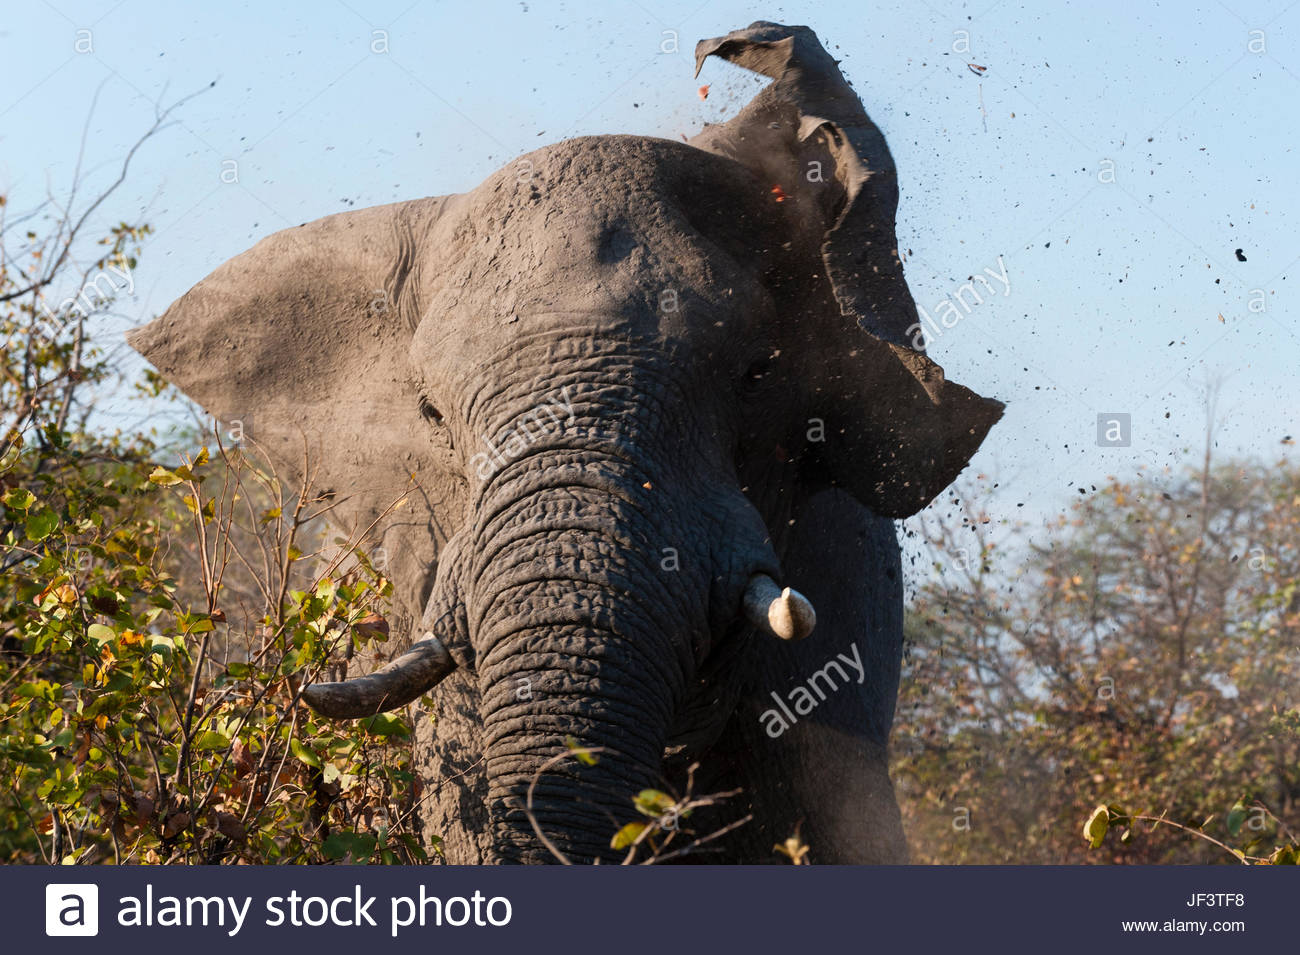 An African elephant, Loxodonta africana, charging and flapping his ears. - Stock Image